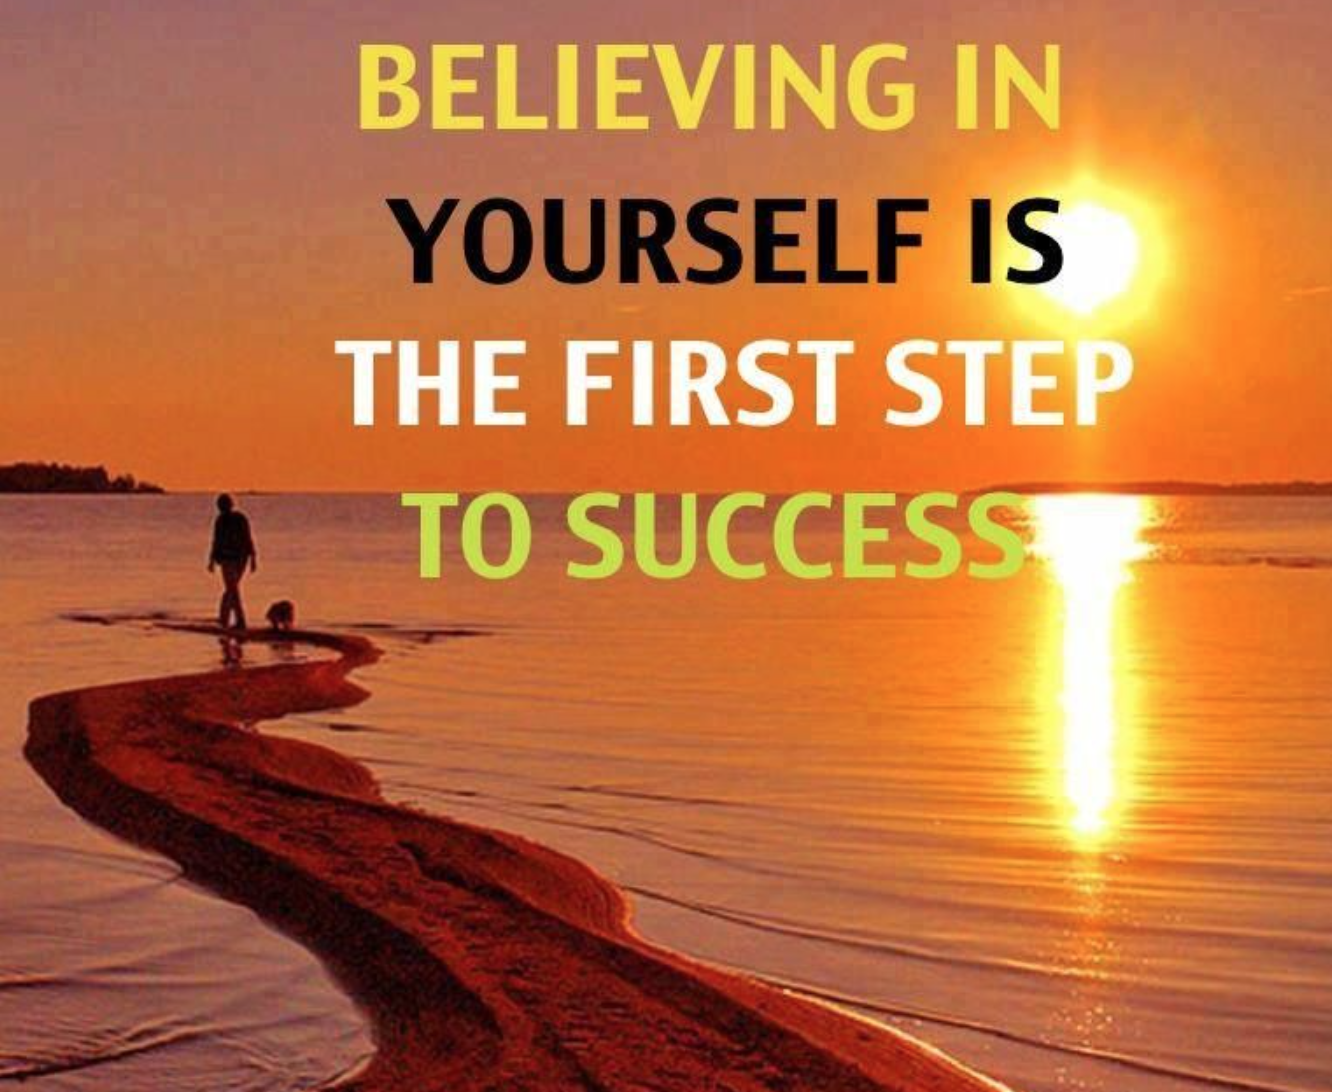 [Image] Believing in yourself is the first step to success.